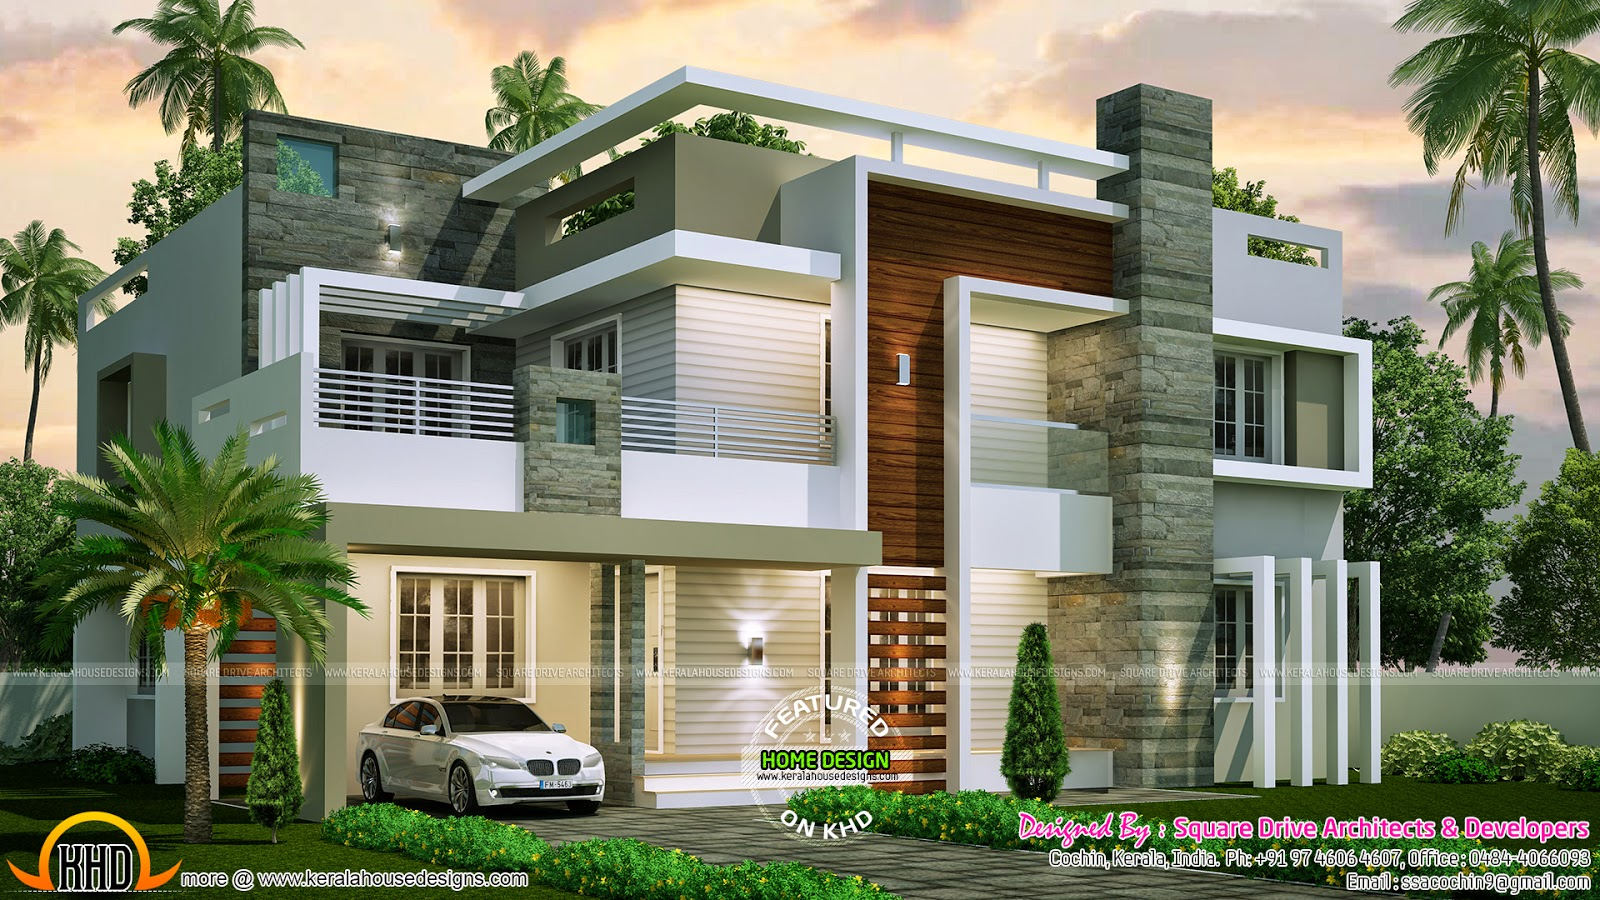 4 bedroom contemporary home design kerala home design for Contemporary homes images